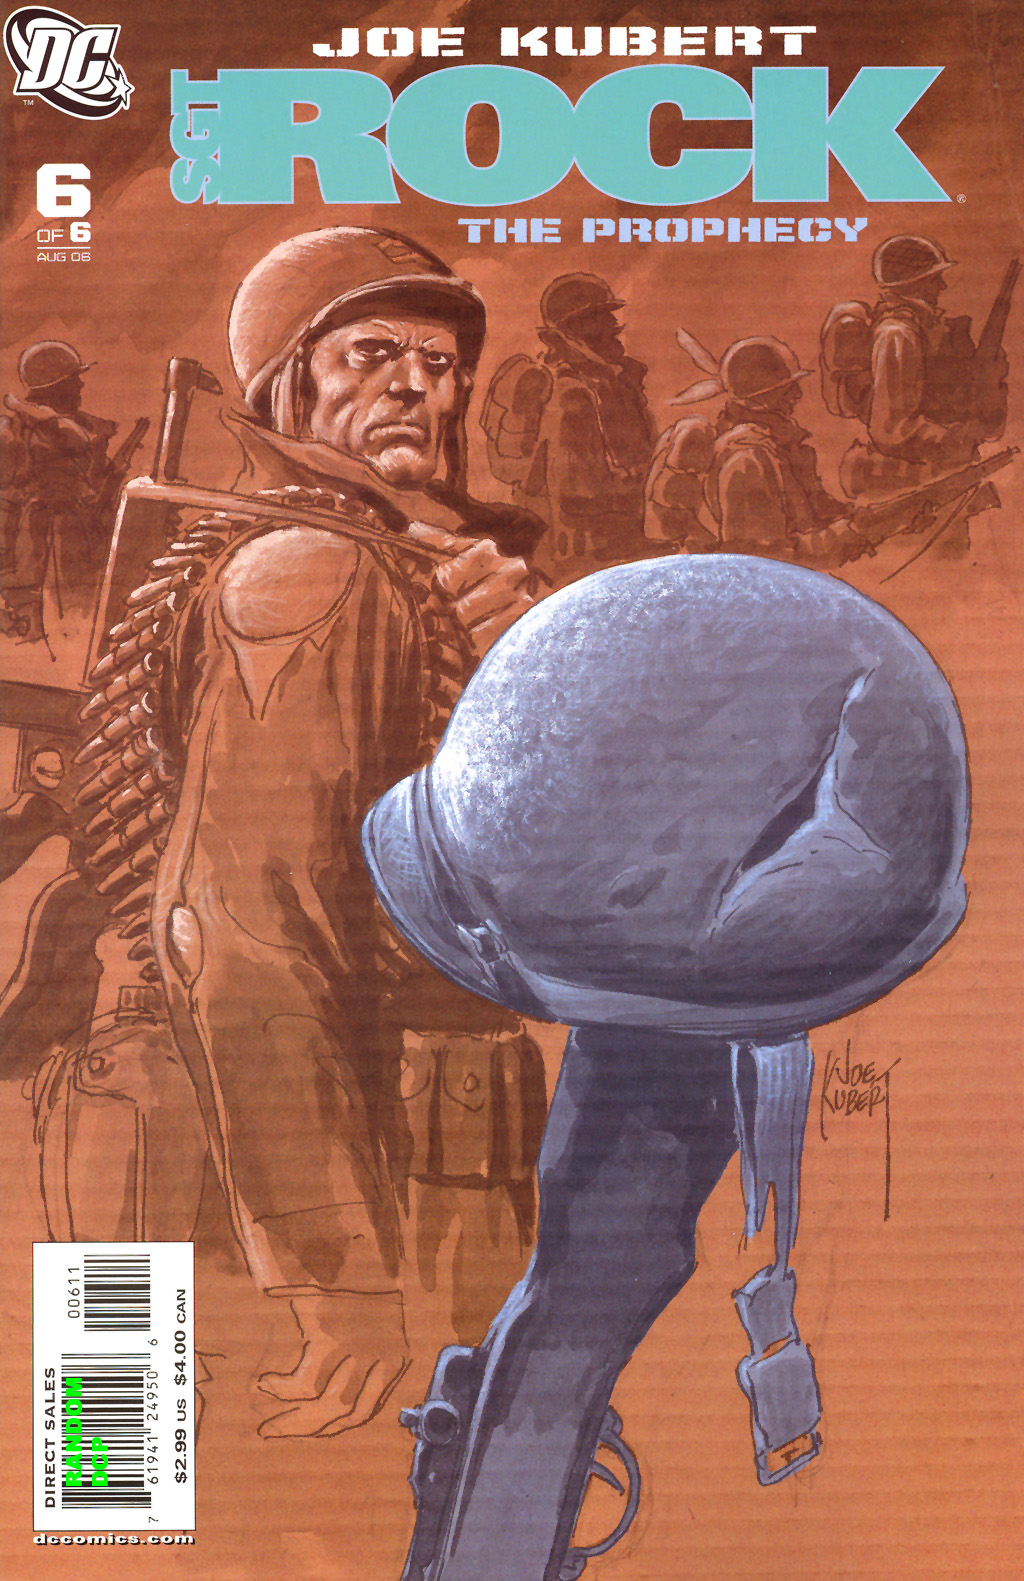 Read online Sgt. Rock: The Prophecy comic -  Issue #6 - 1